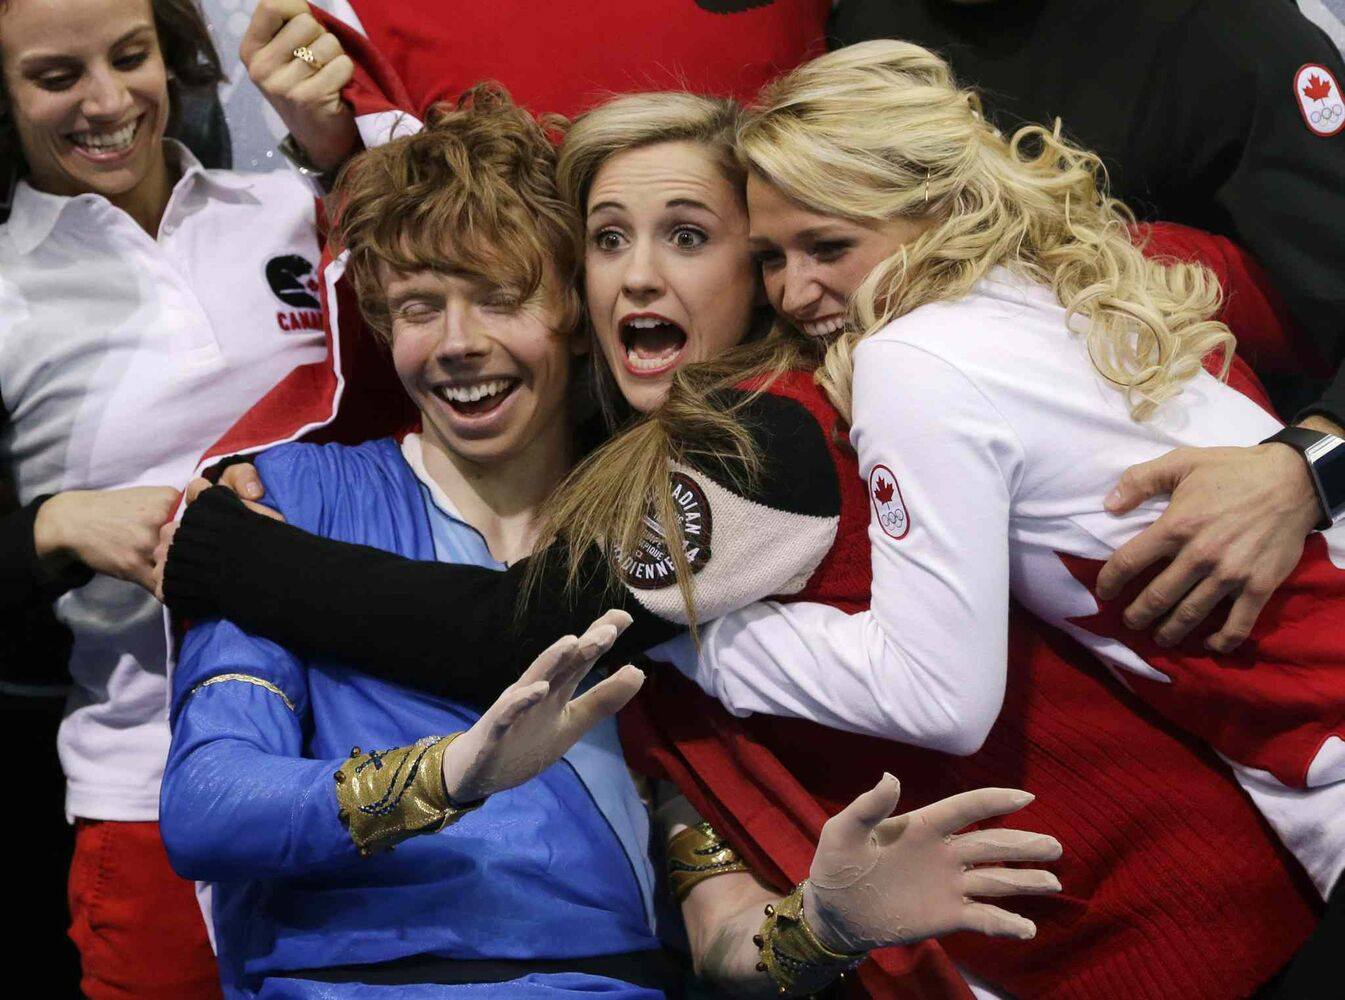 Kevin Reynolds of Canada (left) reacts with teammates after competing in the men's team free skate figure skating competition at the Iceberg Skating Palace during the 2014 Winter Olympics. (Darron Cummings / The Associated Press)